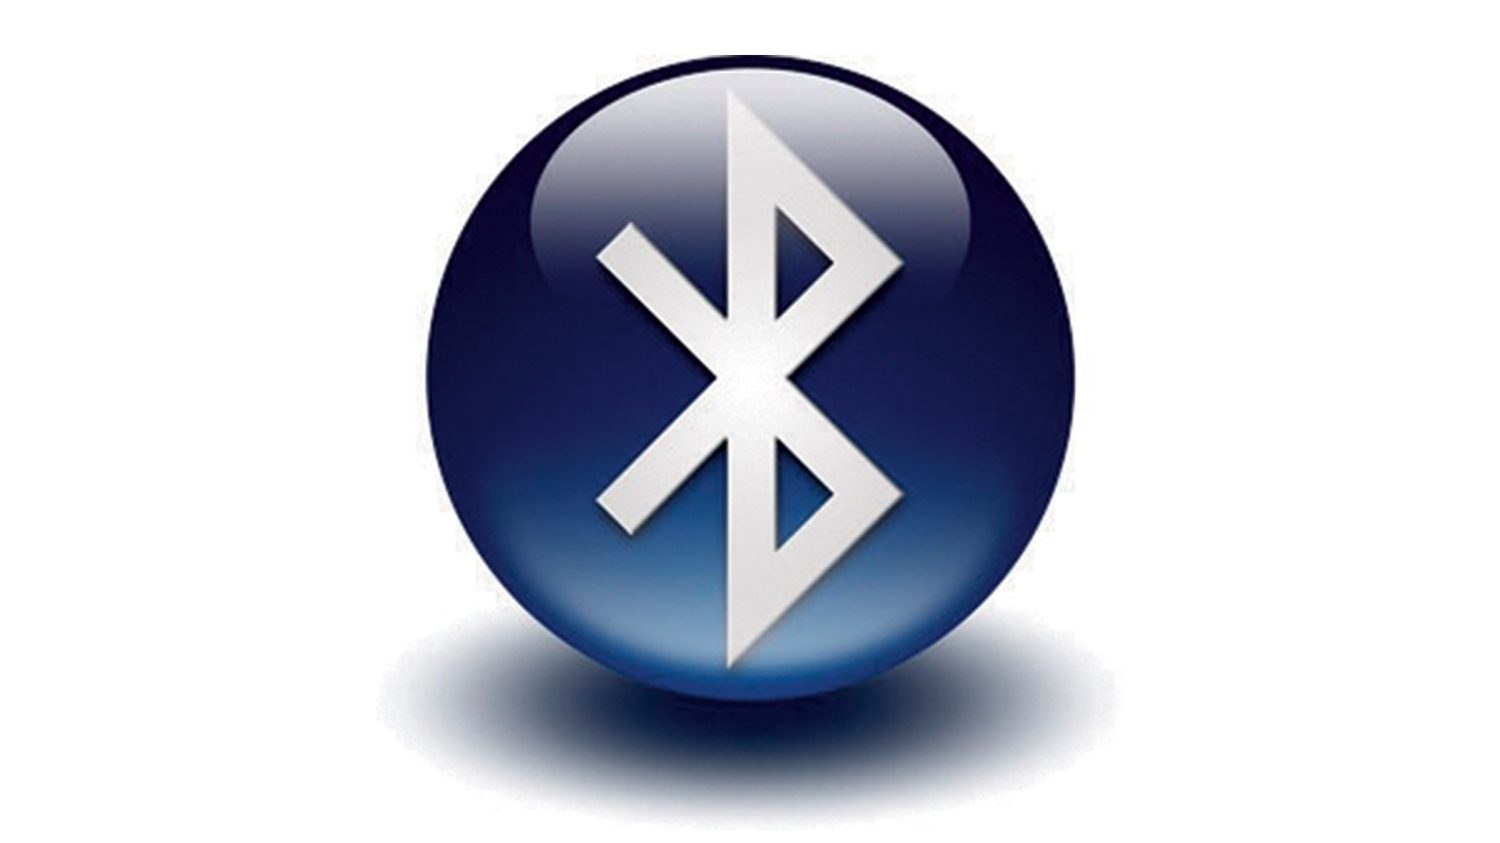 Logotipo de Bluetooth